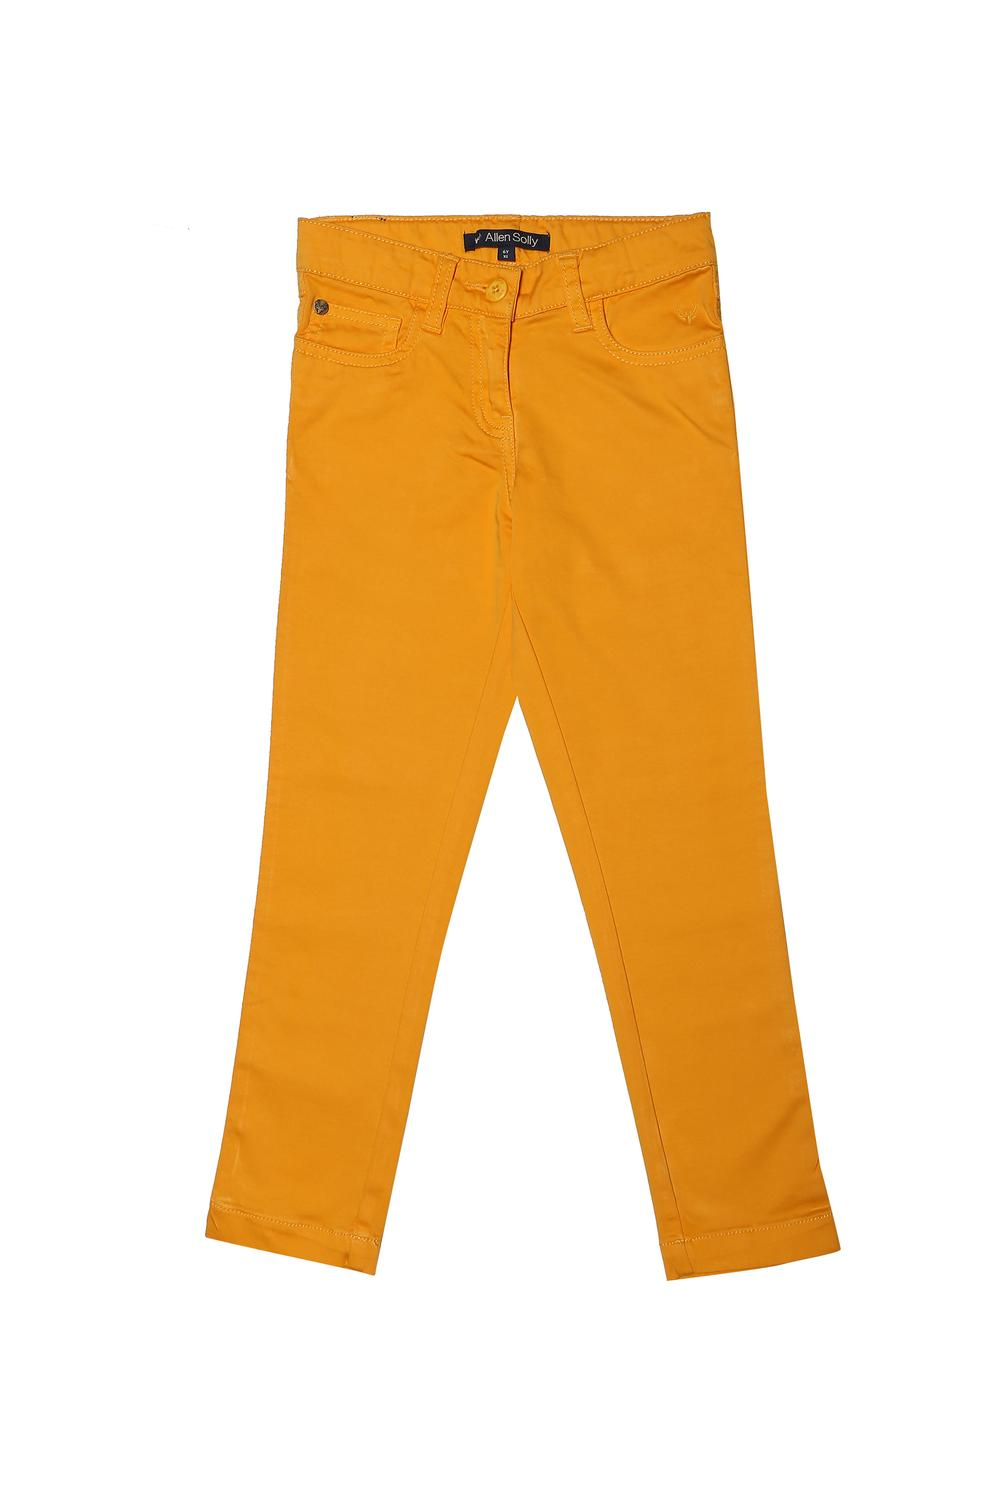 32be0ca3ea9a4e Allen Solly Junior Bottoms & Leggings, Allen Solly Yellow Trousers for Girls  at Allensolly.com